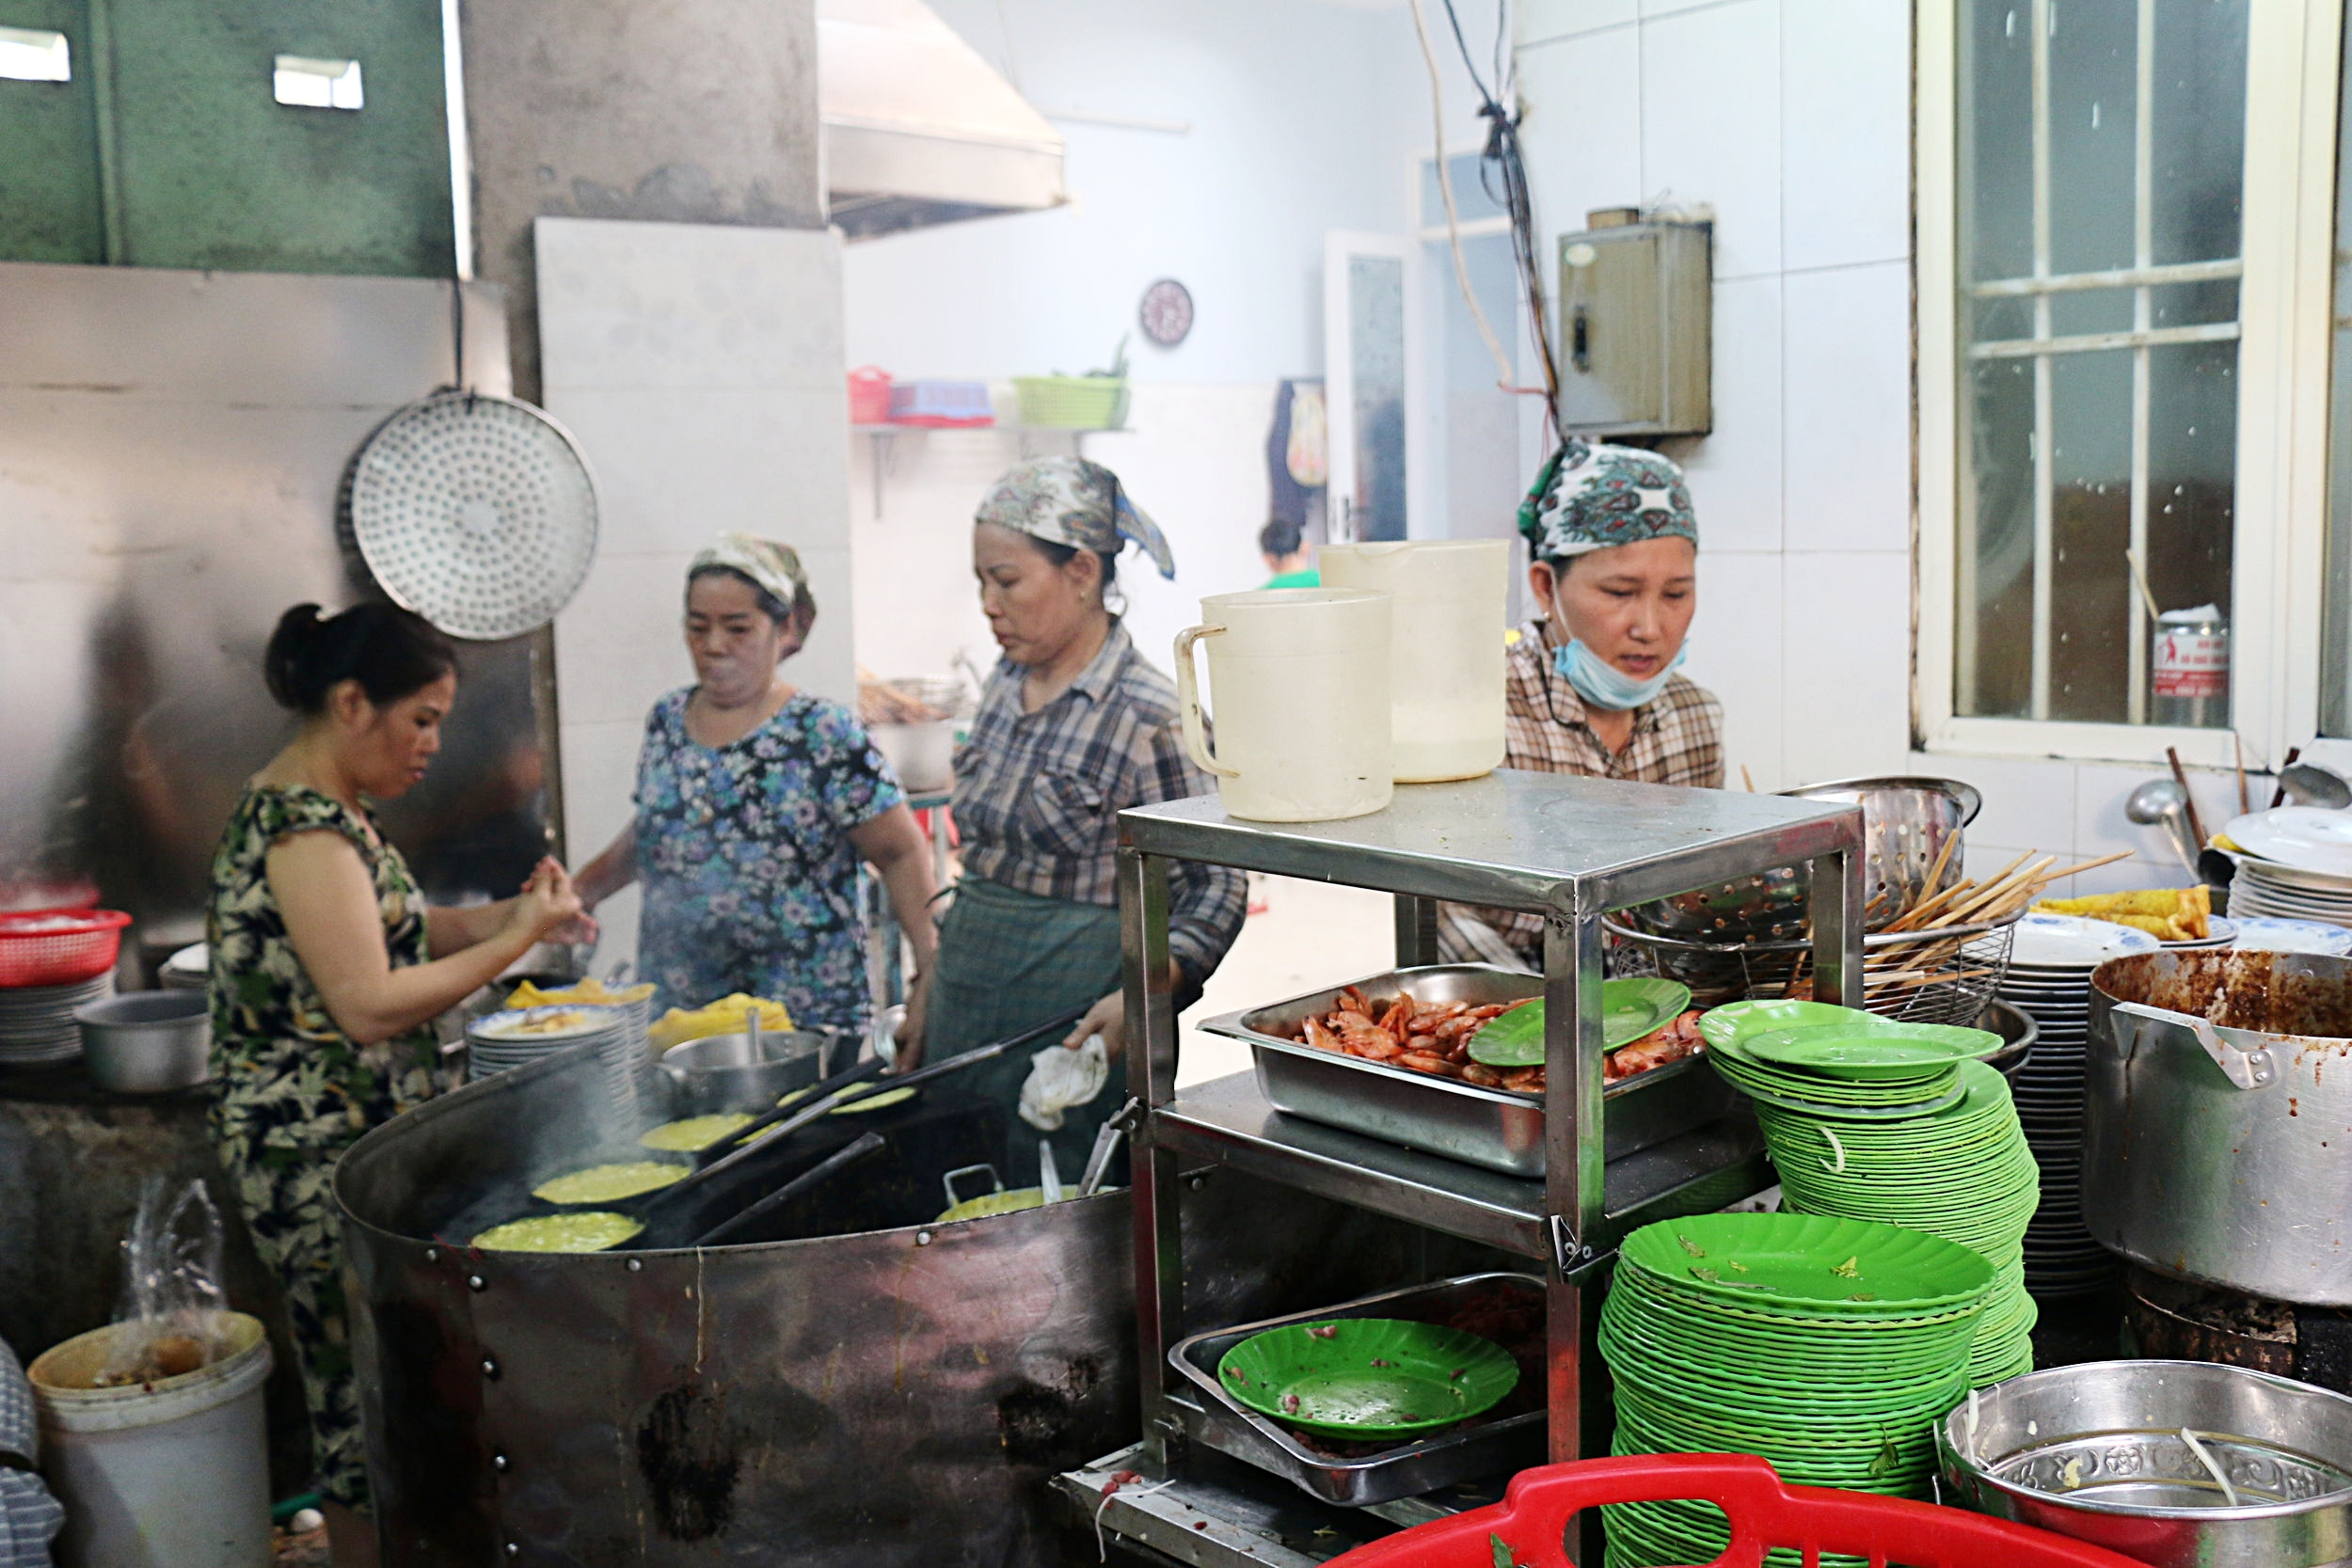 These ladies hard at work churning out crepes, grilled meats and sauces for their customers.